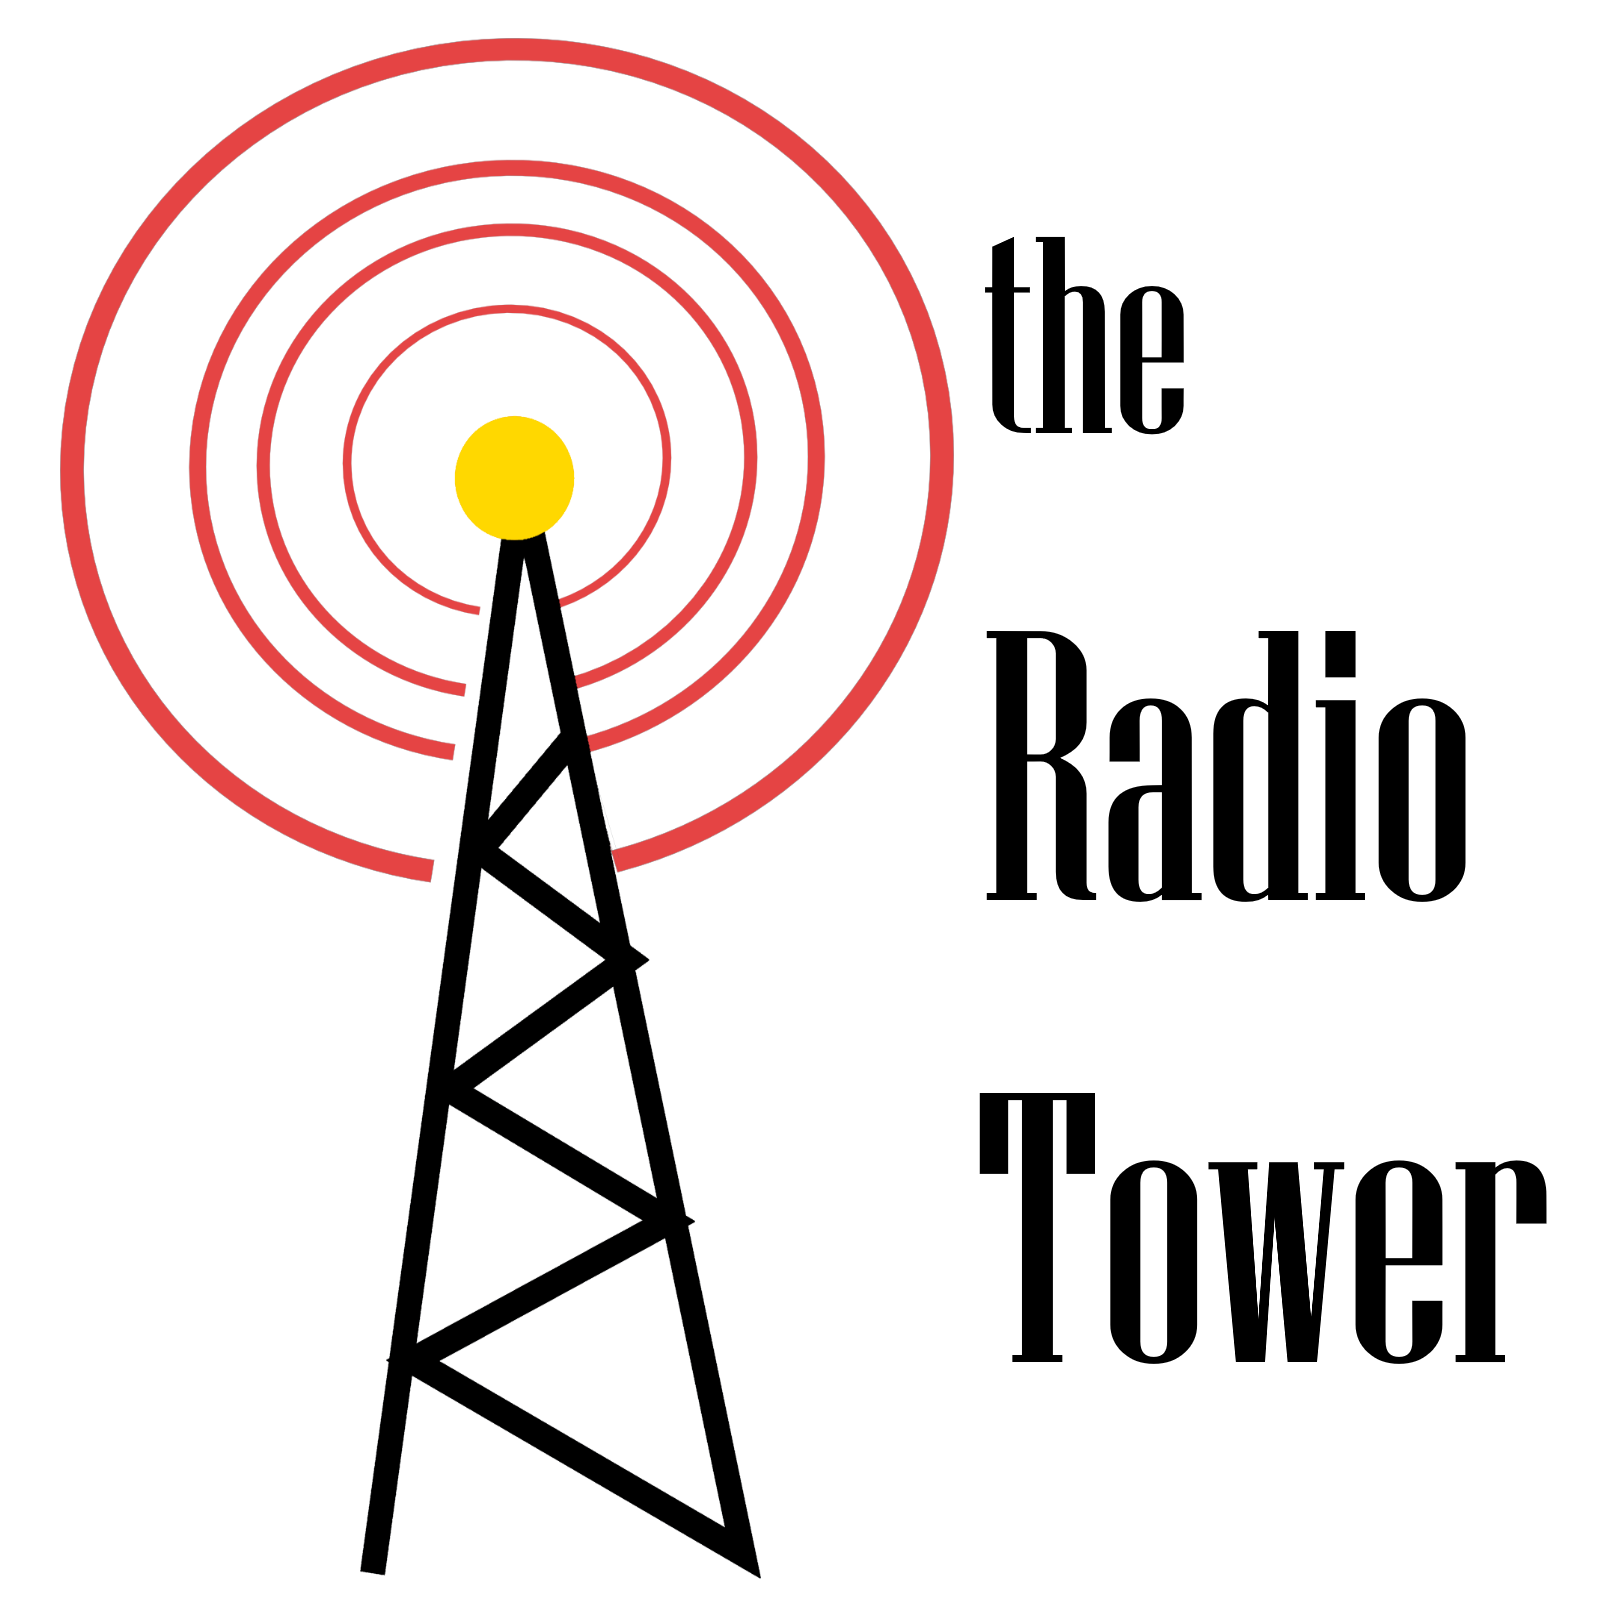 Radio Tower 16: Jack Kratoville show art